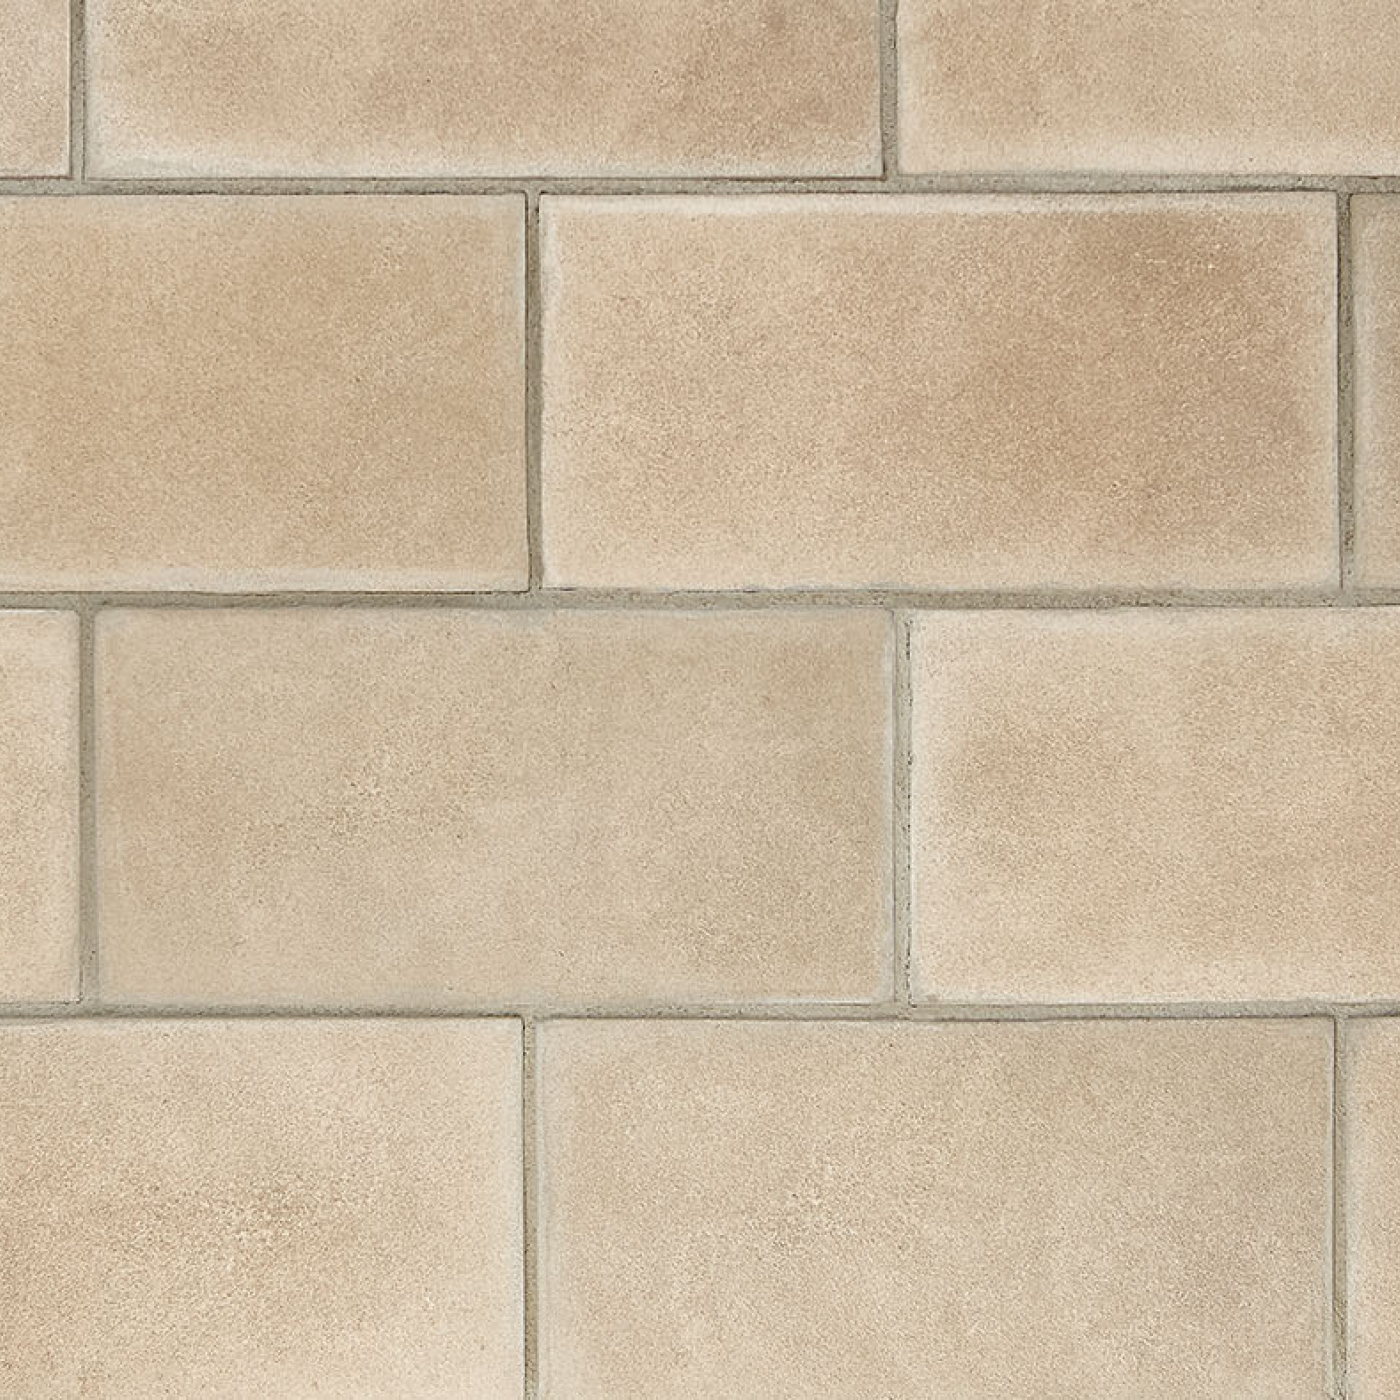 Taupe Imperial Stone Veneer from Environmental StoneWorks